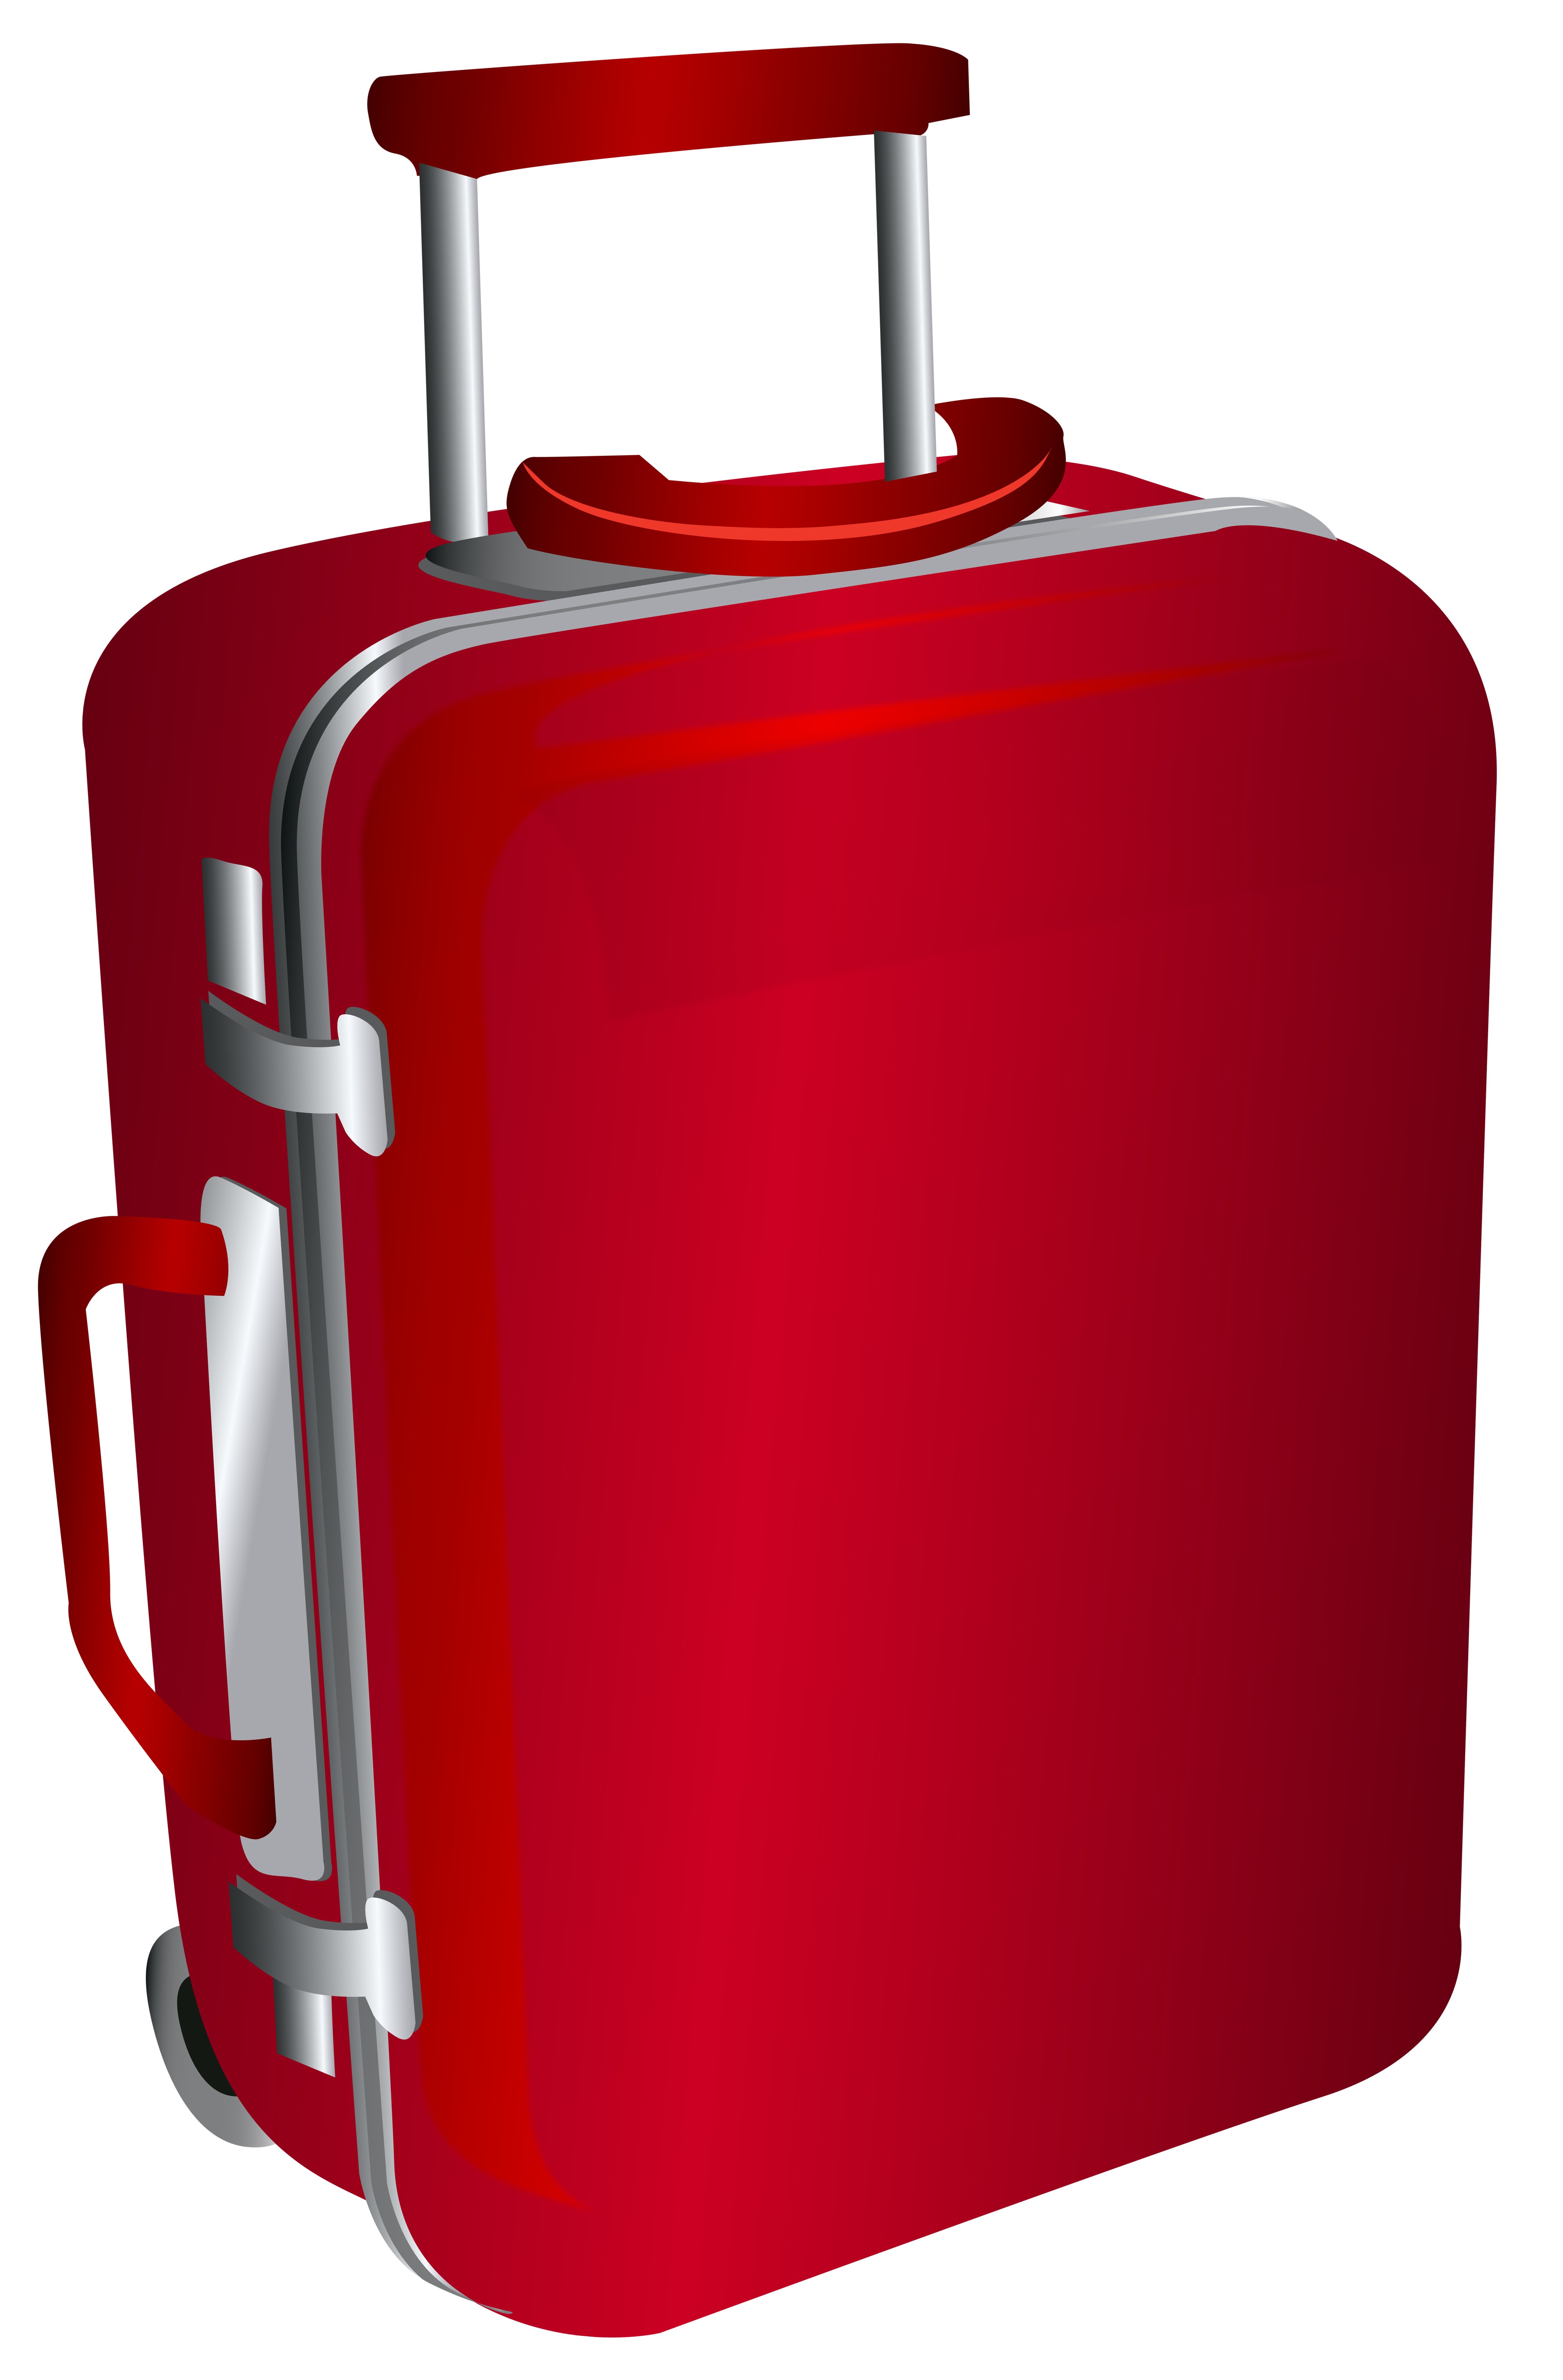 Red trolley travel bag. Luggage clipart animated